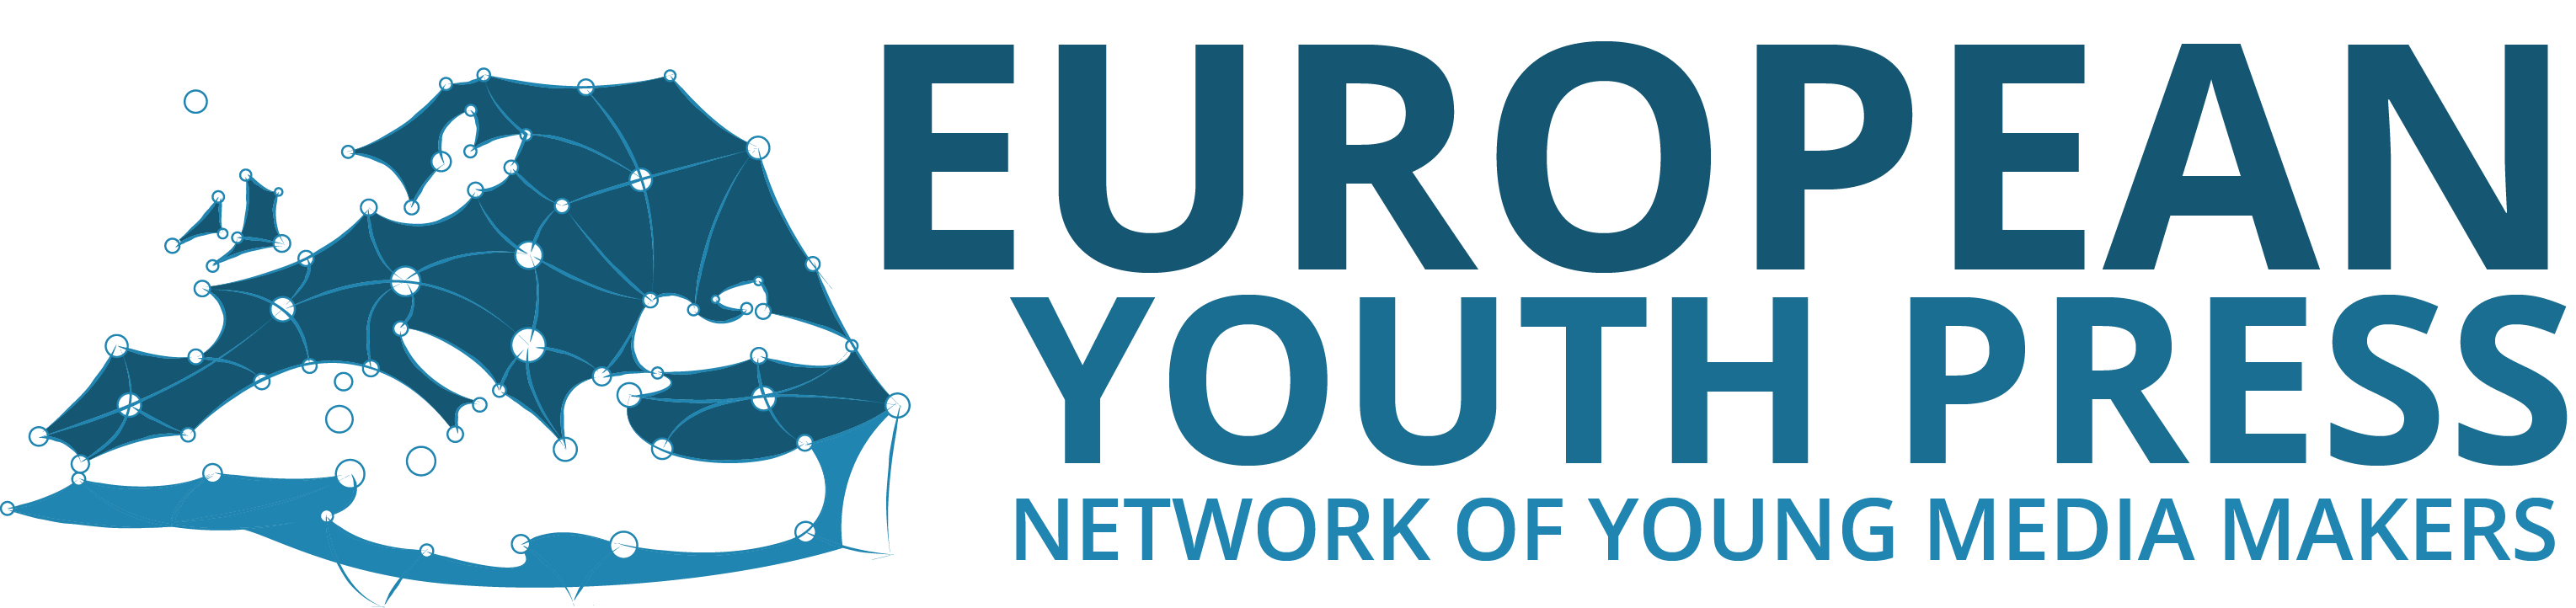 Resultado de imagen de European Youth Press